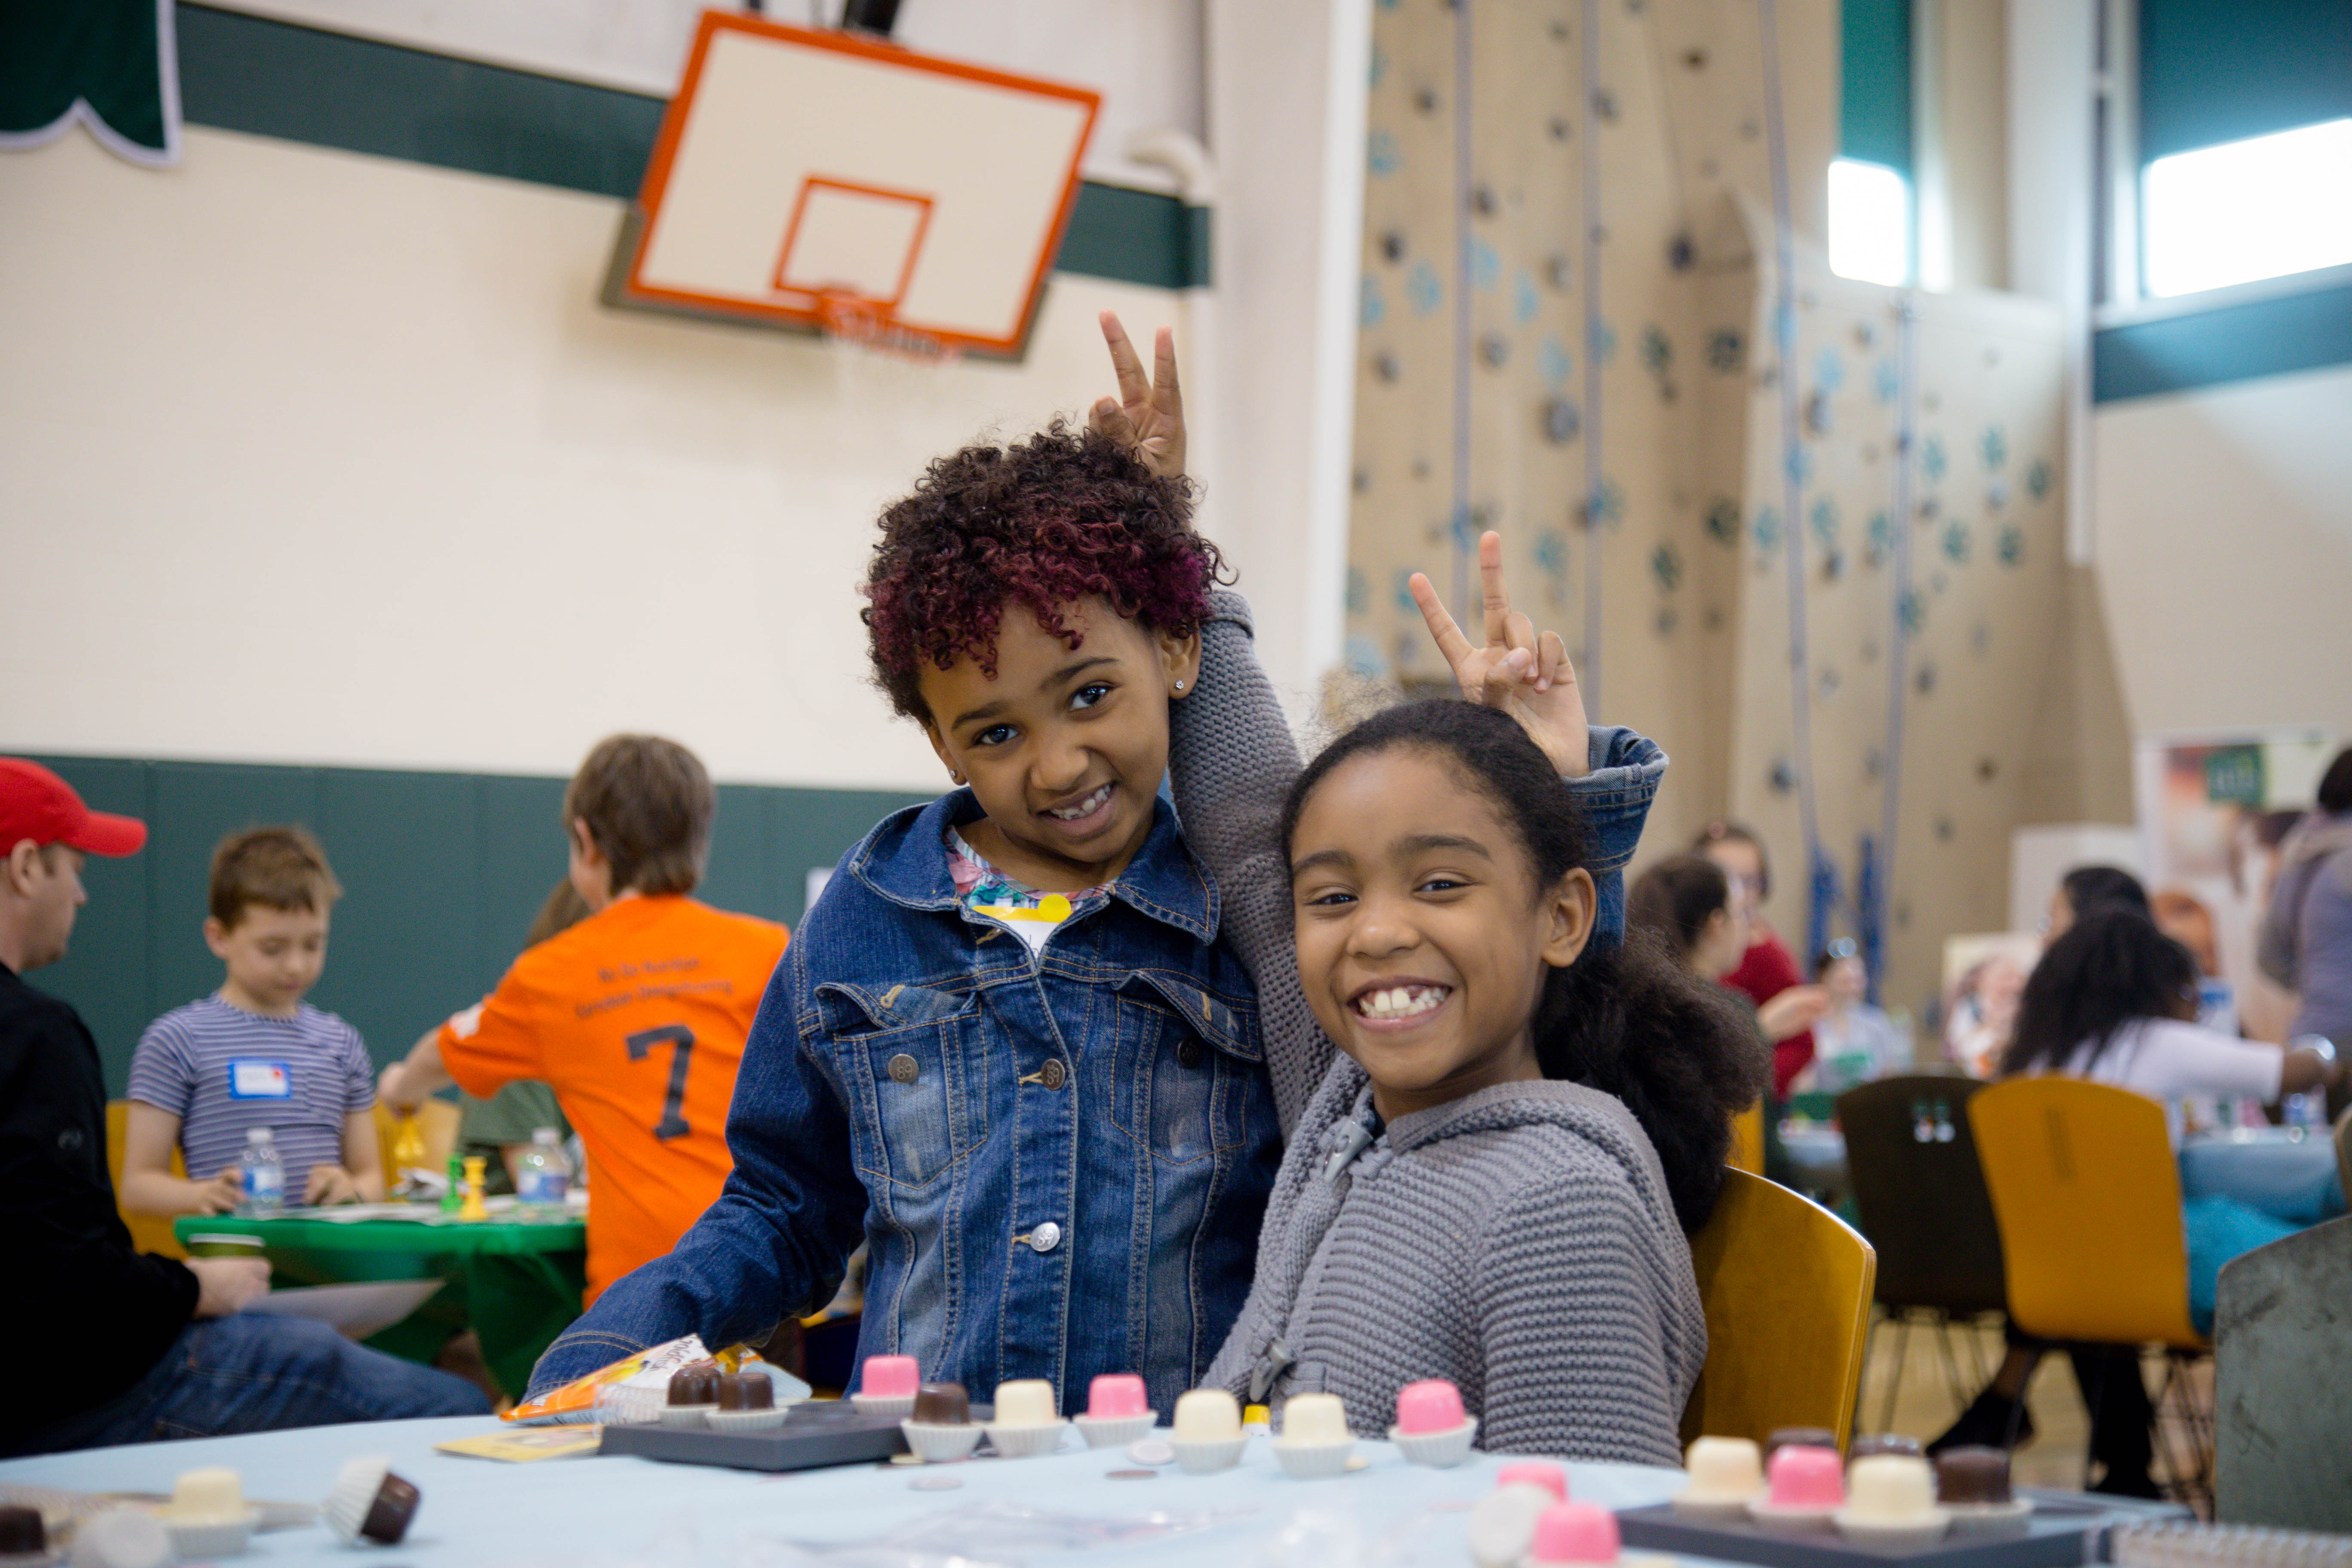 This is a photo of two girls smiling and posing together at the Julia Robinson Mathematics Festival at The Ellis School.